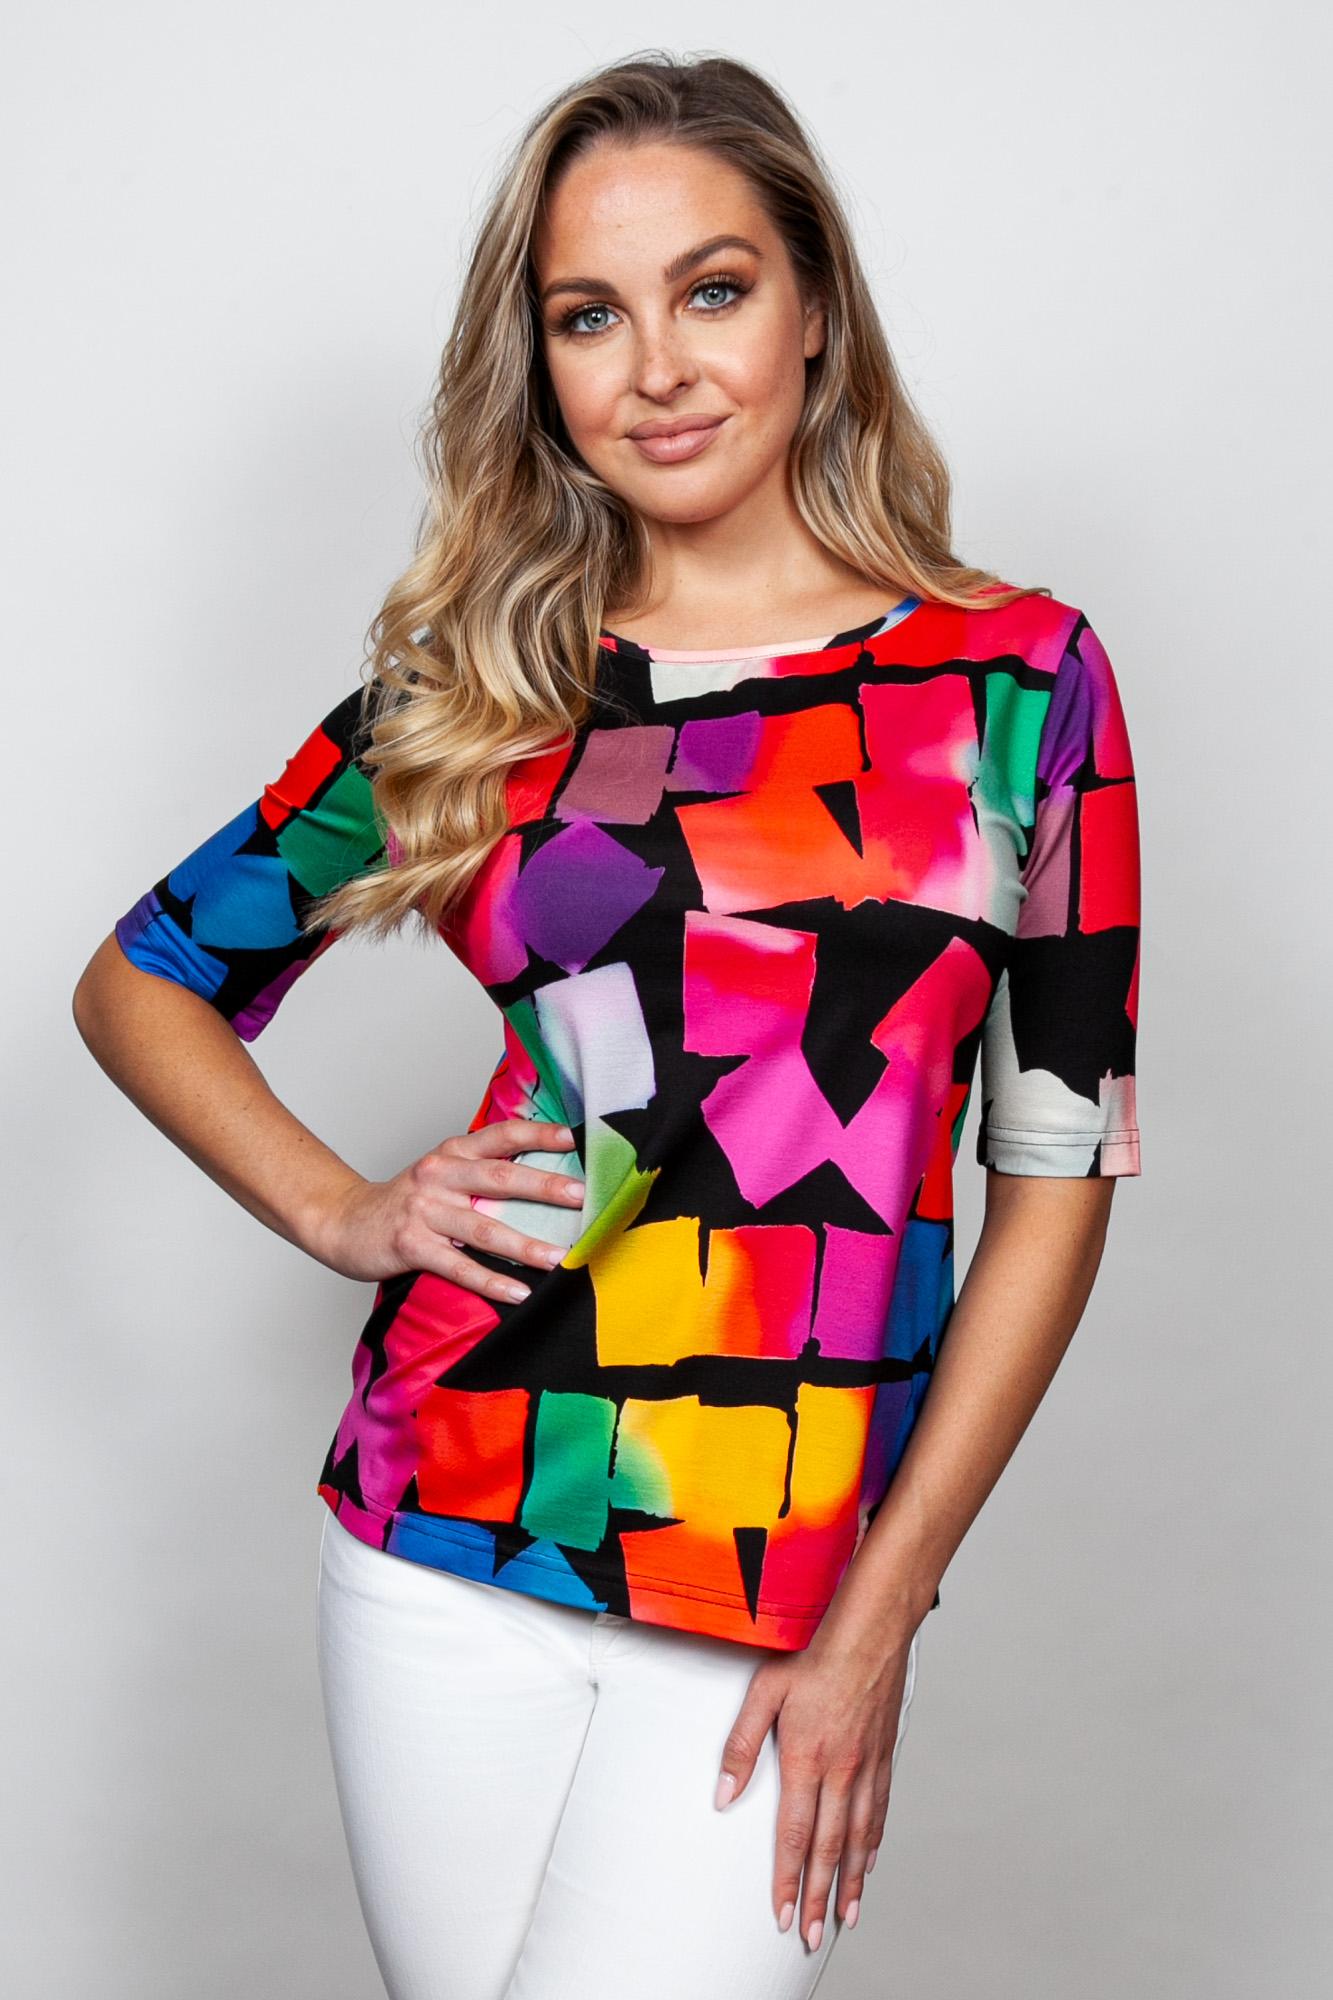 Style # 44224-20, p 7 Viscose Prints Print: Cubes + 5 others